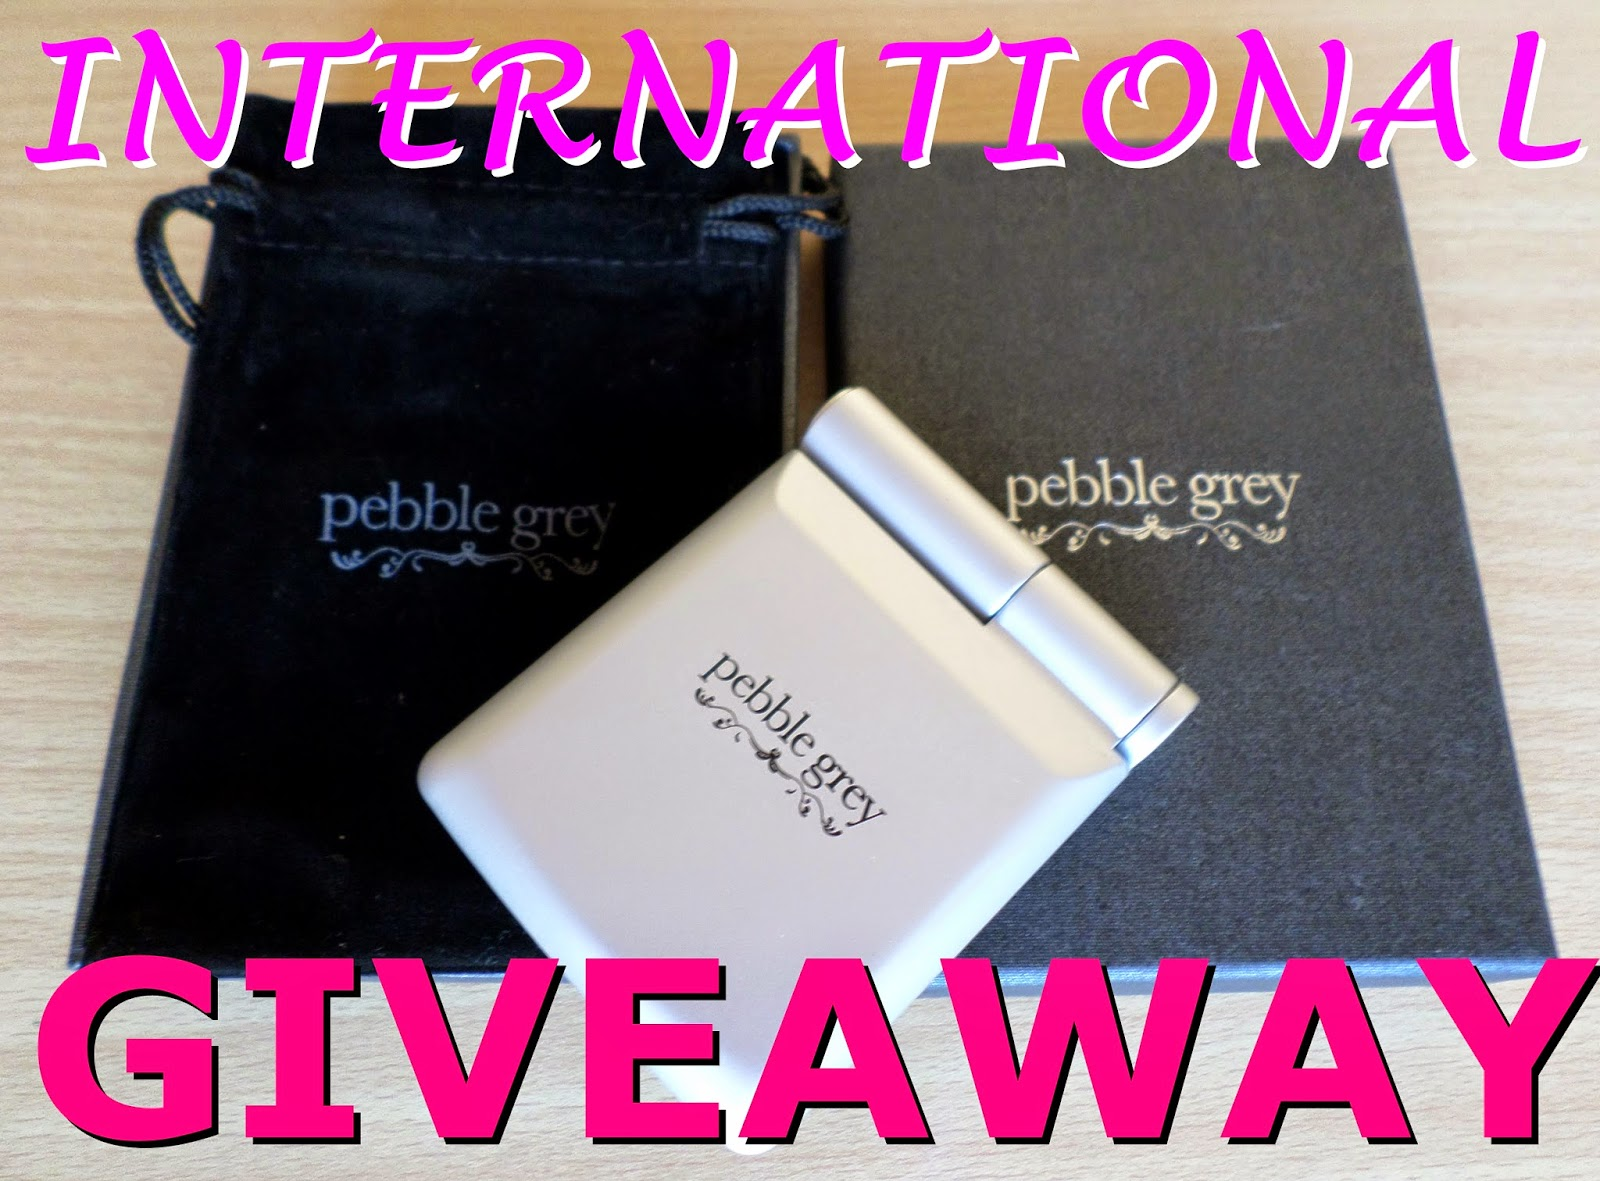 Pebble Grey LED Compact Mirror Review & Giveaway